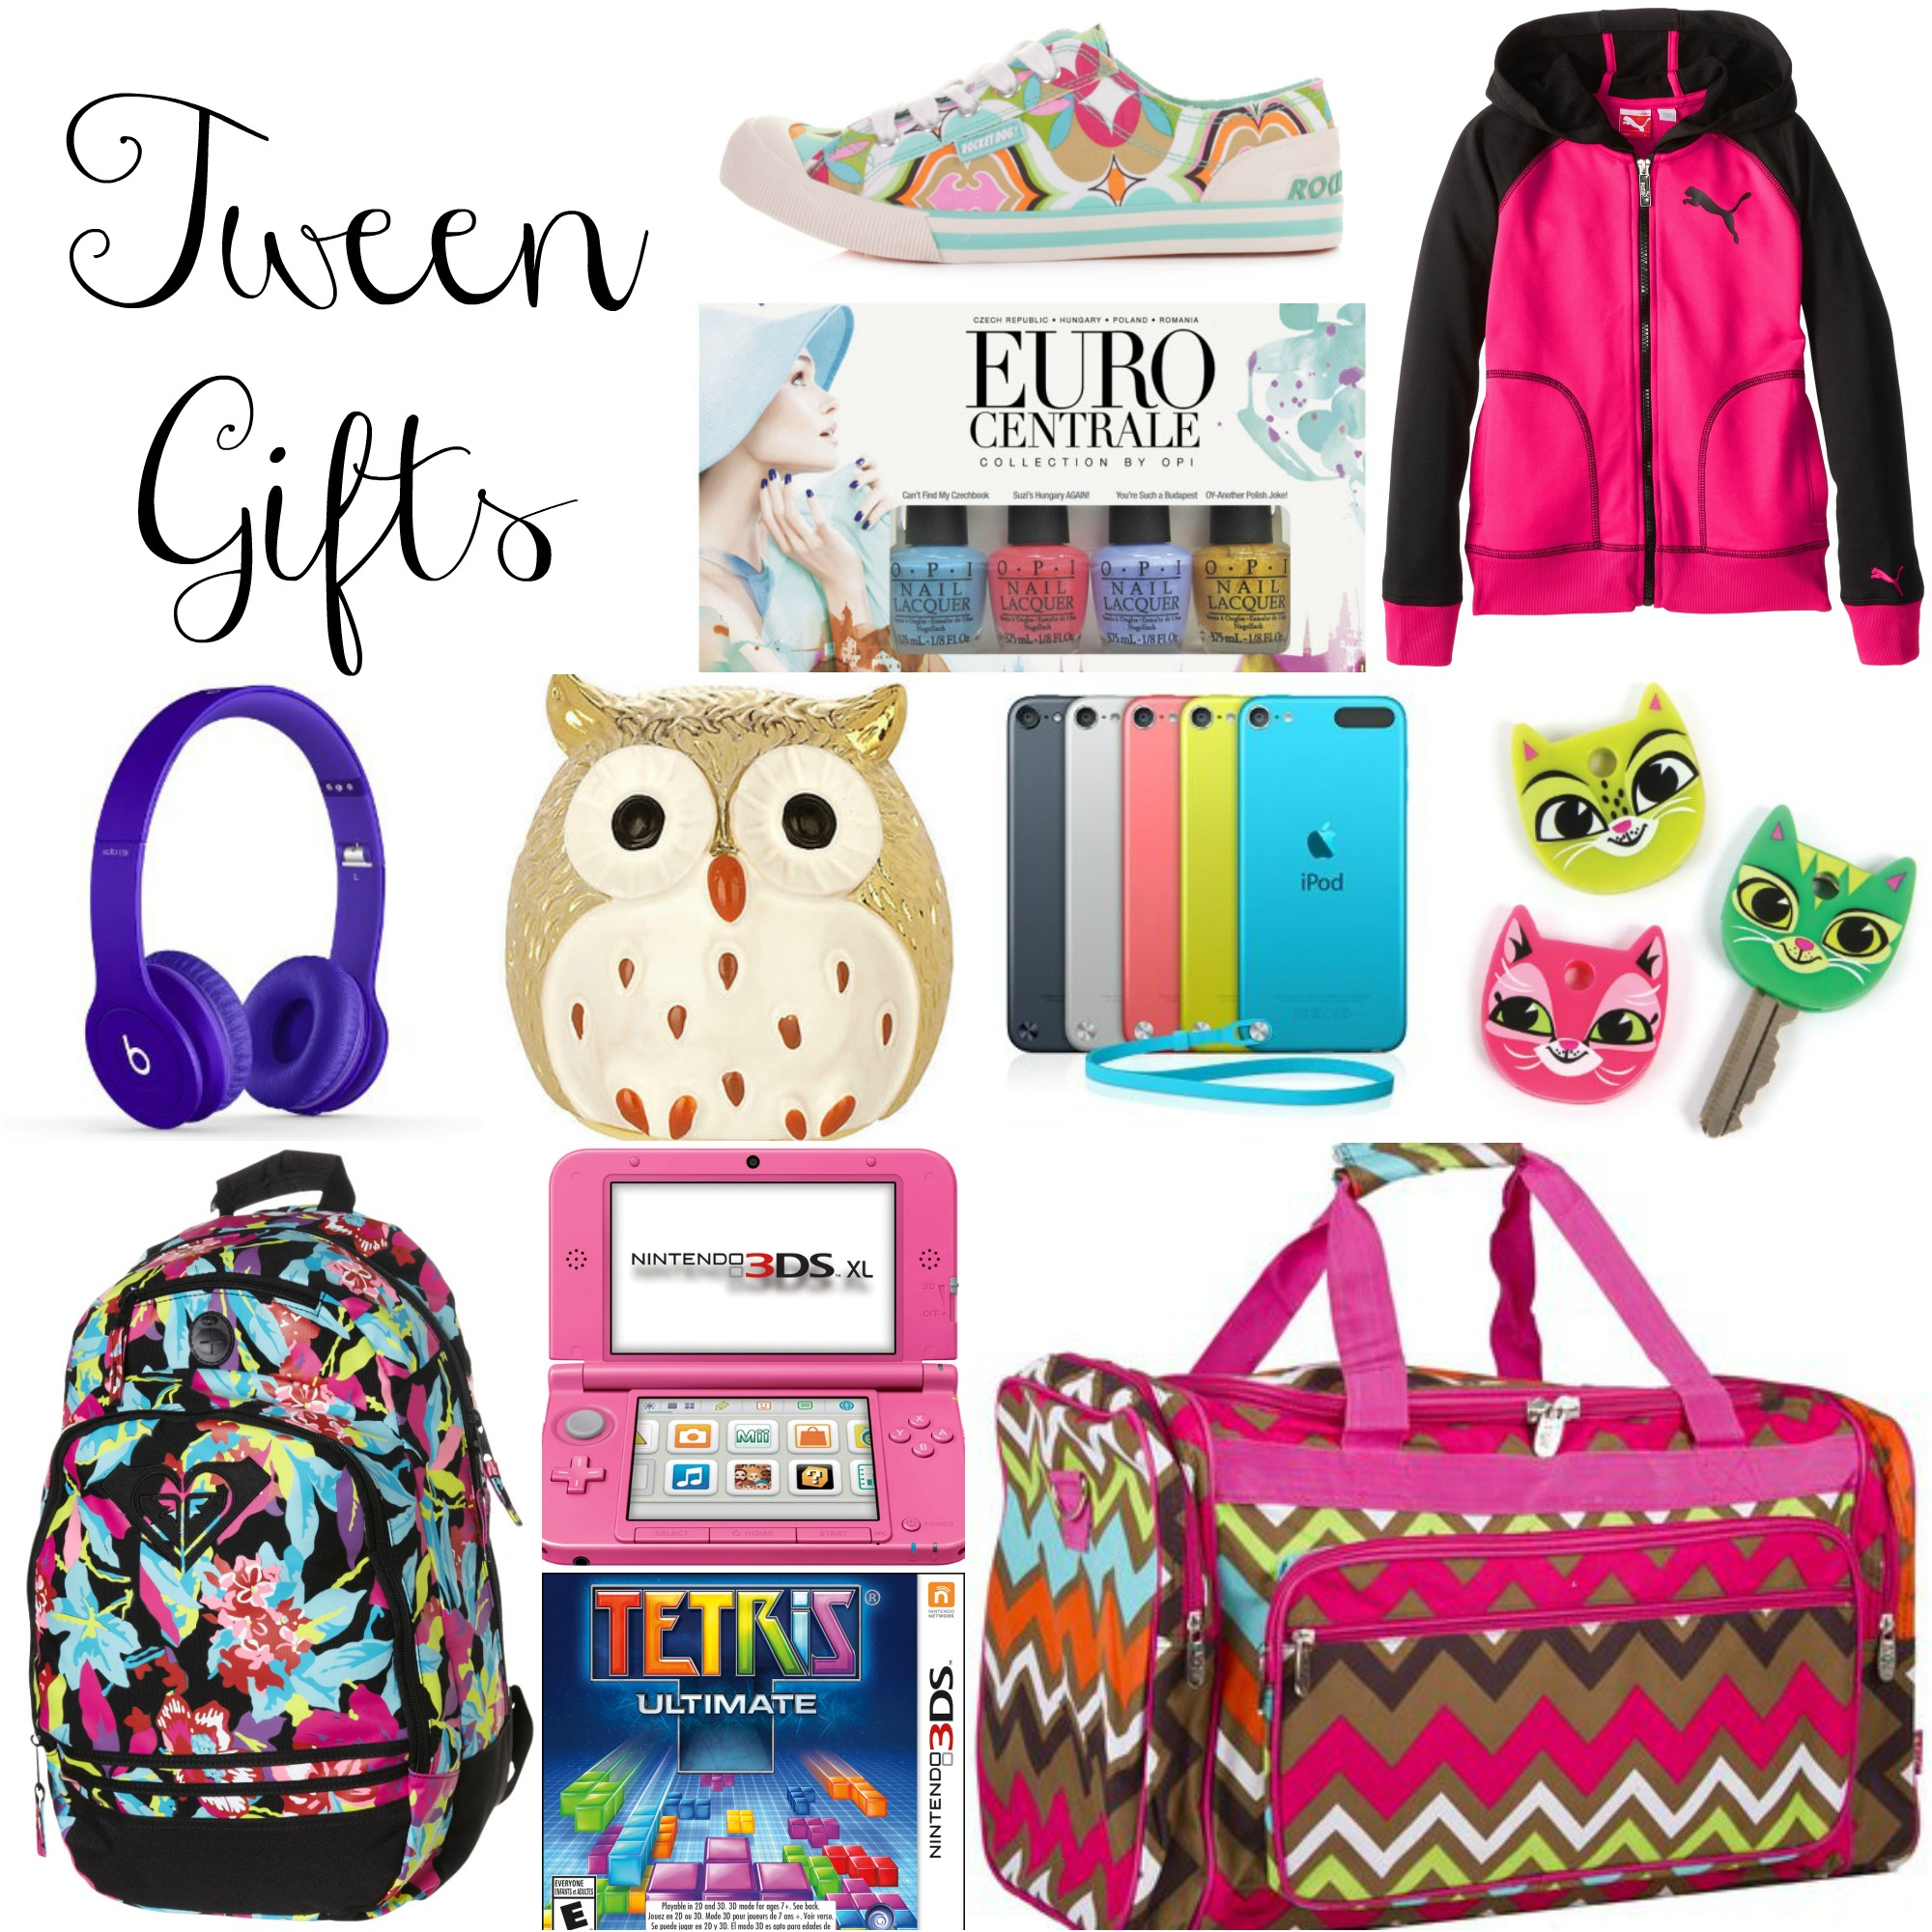 21 Great Gifts for Tweens